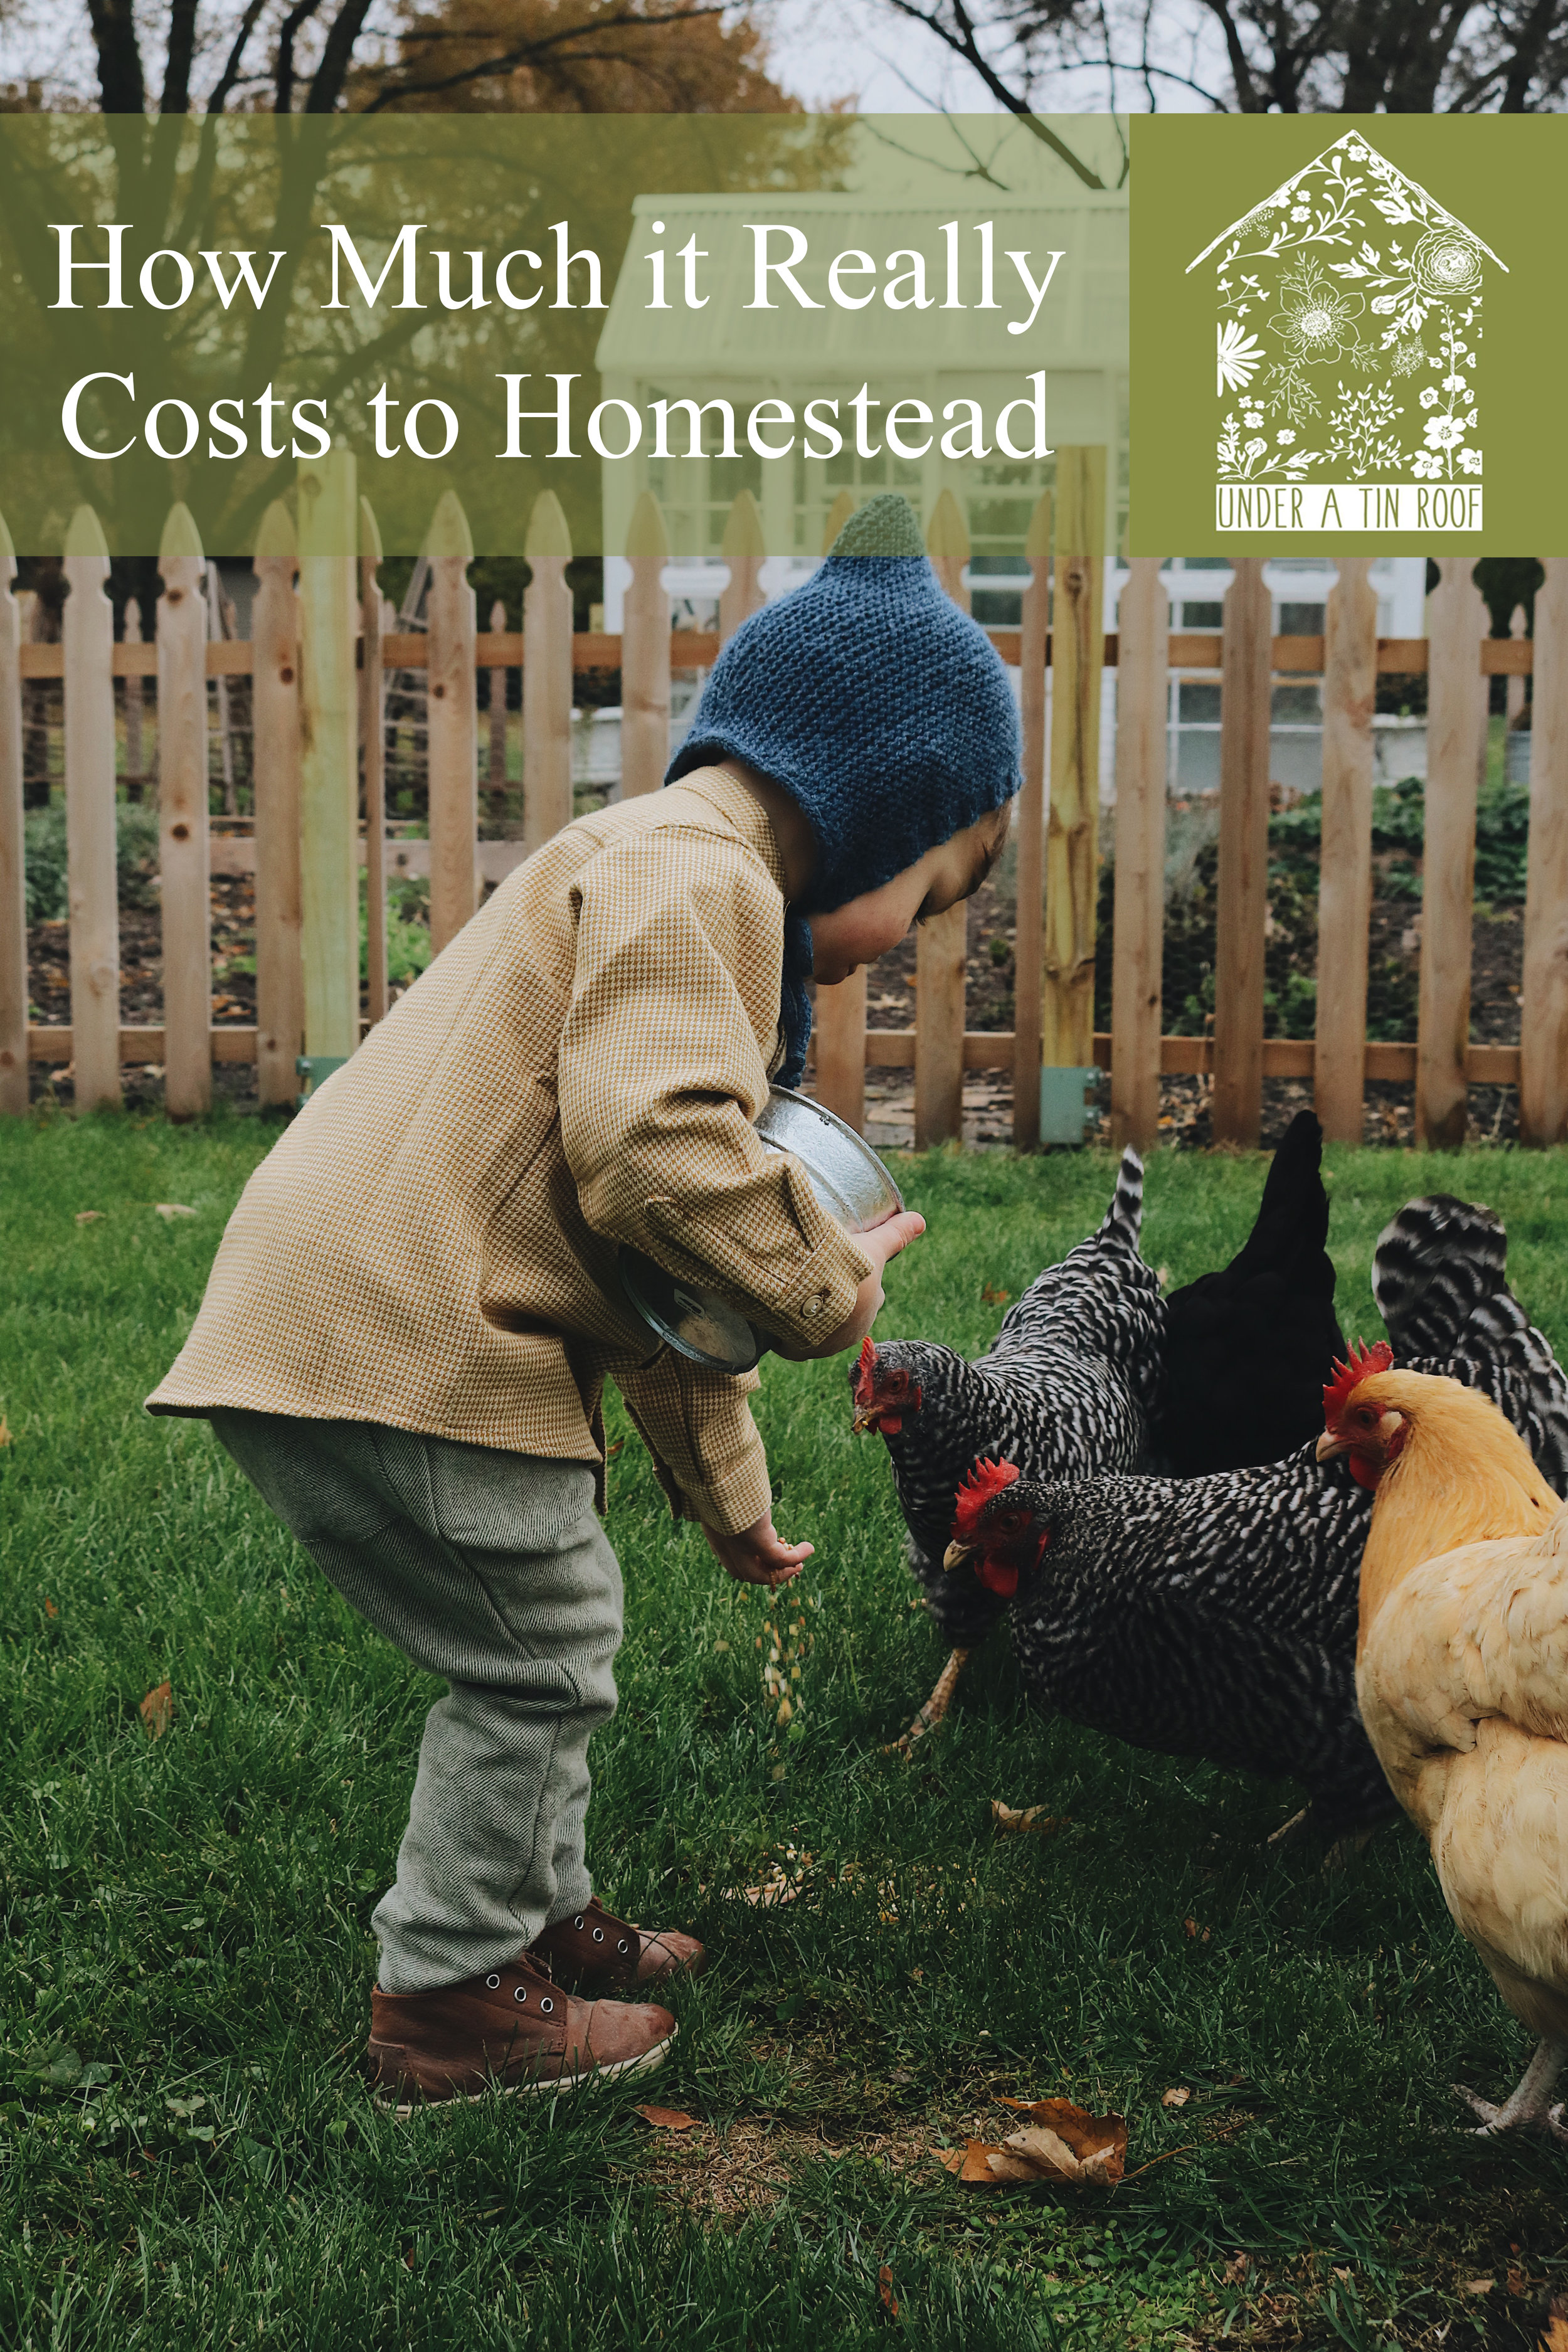 How Much It Really Costs to Homestead on Less Than an Acre - Under A Tin Roof Blog